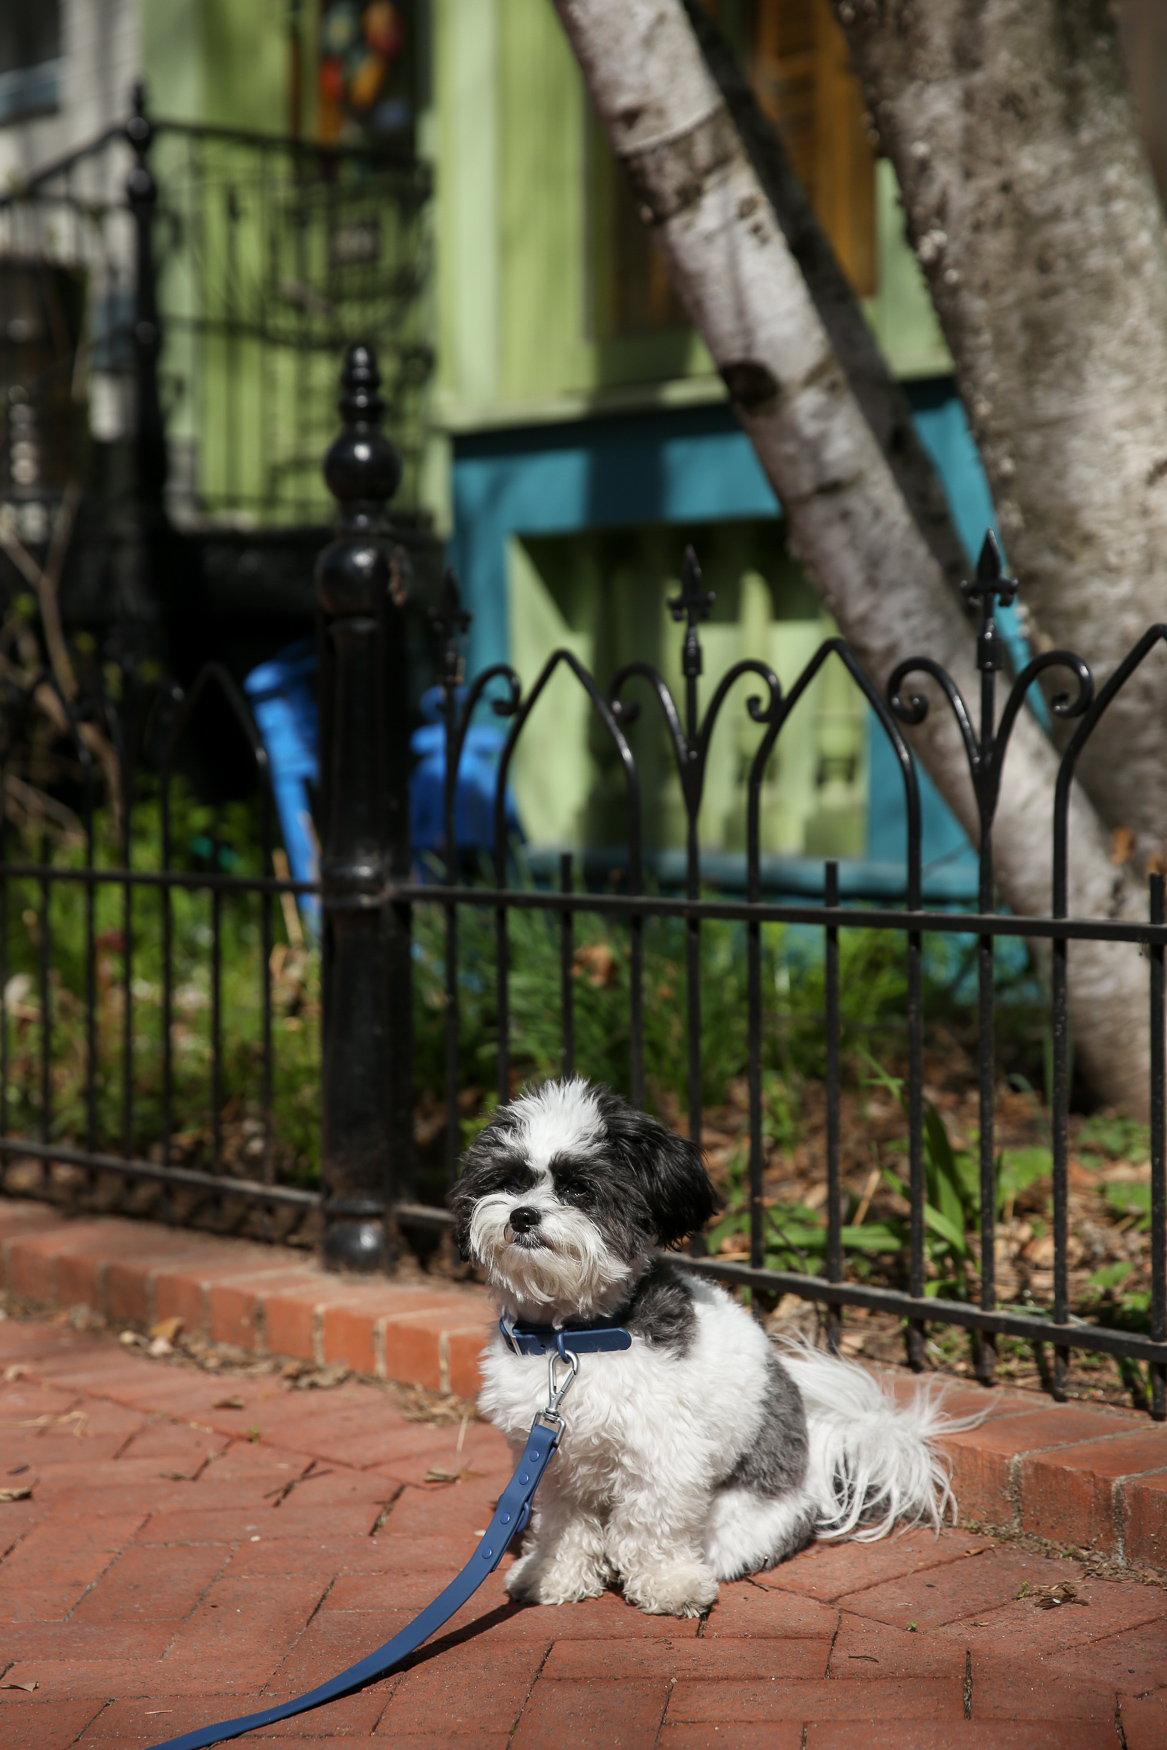 "Meet Otis, a 1.5-year-old Yorkie Poo, who was adopted in November 2017 through Carolina Canine Rescue. Otis loves to cuddle with his mom, wrestle and play fetch with his dad, and explore the city. He loves other dogs, but gets nervous if they're too big, and he's shy around new people, but warms up once he gets to know them. He loves to be outside and play in the grass -- he's a big time explorer and investigates everything around him. He also loves his fuzzy blanket. Though his pawrents say everyday with Otis is a great memory, one of their favorites was a vacation to Vermont. ""We went kayaking, played outside, and enjoyed the warm weather and outdoors so much that when it was time to get in the car and leave, we had to chase Otis around the yard for 20 full minutes to catch him,"" his mom said. ""He loved playing outside so much that he didn't want to leave!"" You can follow all of Otis' adventures on Instagram at @otistheyorkiepoo. If you're interested in having your pup featured, drop us a line at aandrade@dcrefined.com, but we do have quite the waiting list right now so we appreciate your patience! (Image: Amanda Andrade-Rhoades/DC Refined)"